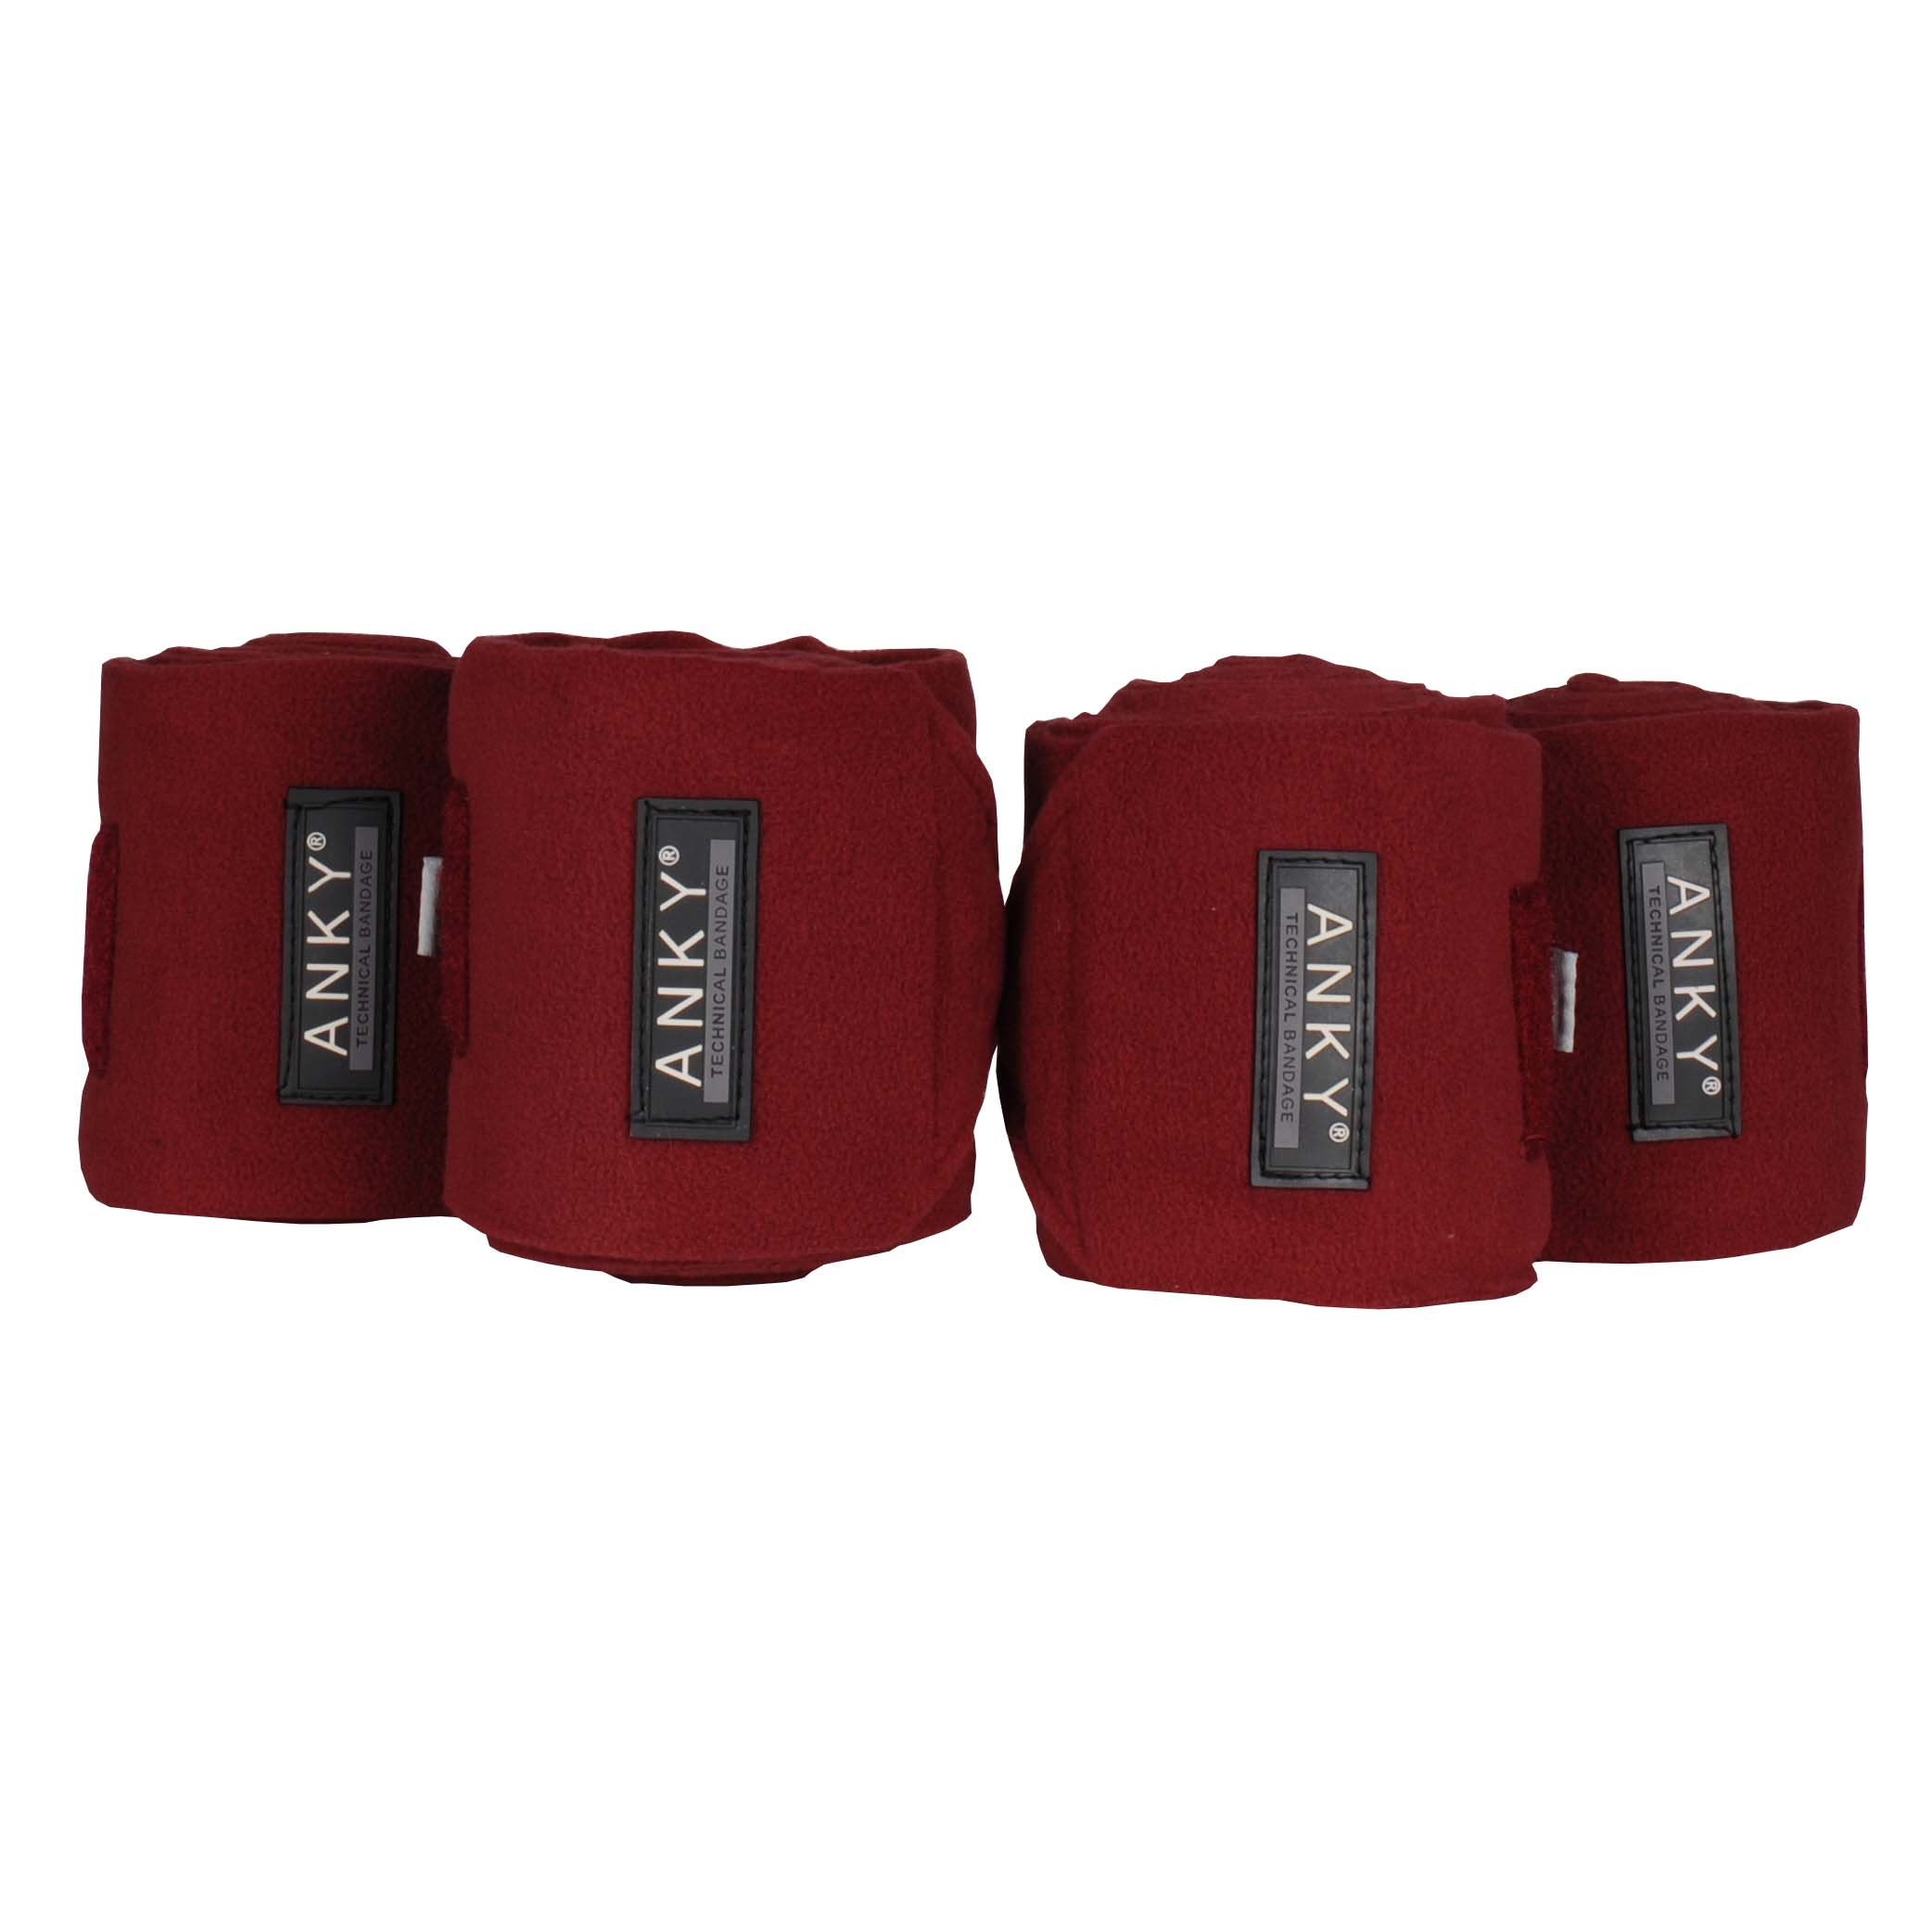 Anky bandages ATB19003 groen